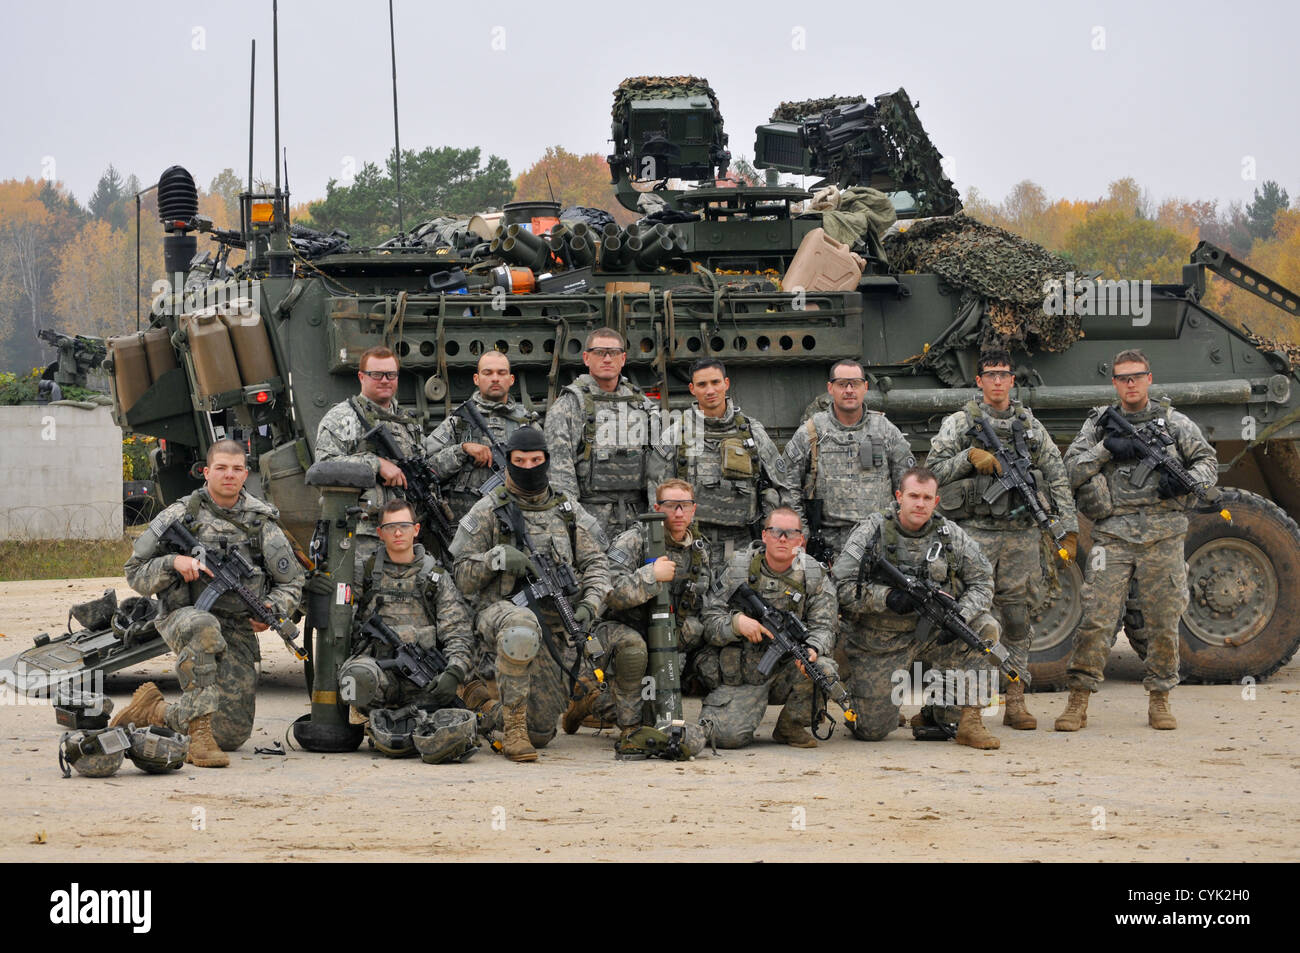 U.S. Army Soldiers, 4th Squadron, 2nd Cavalry Regiment, gather in ...